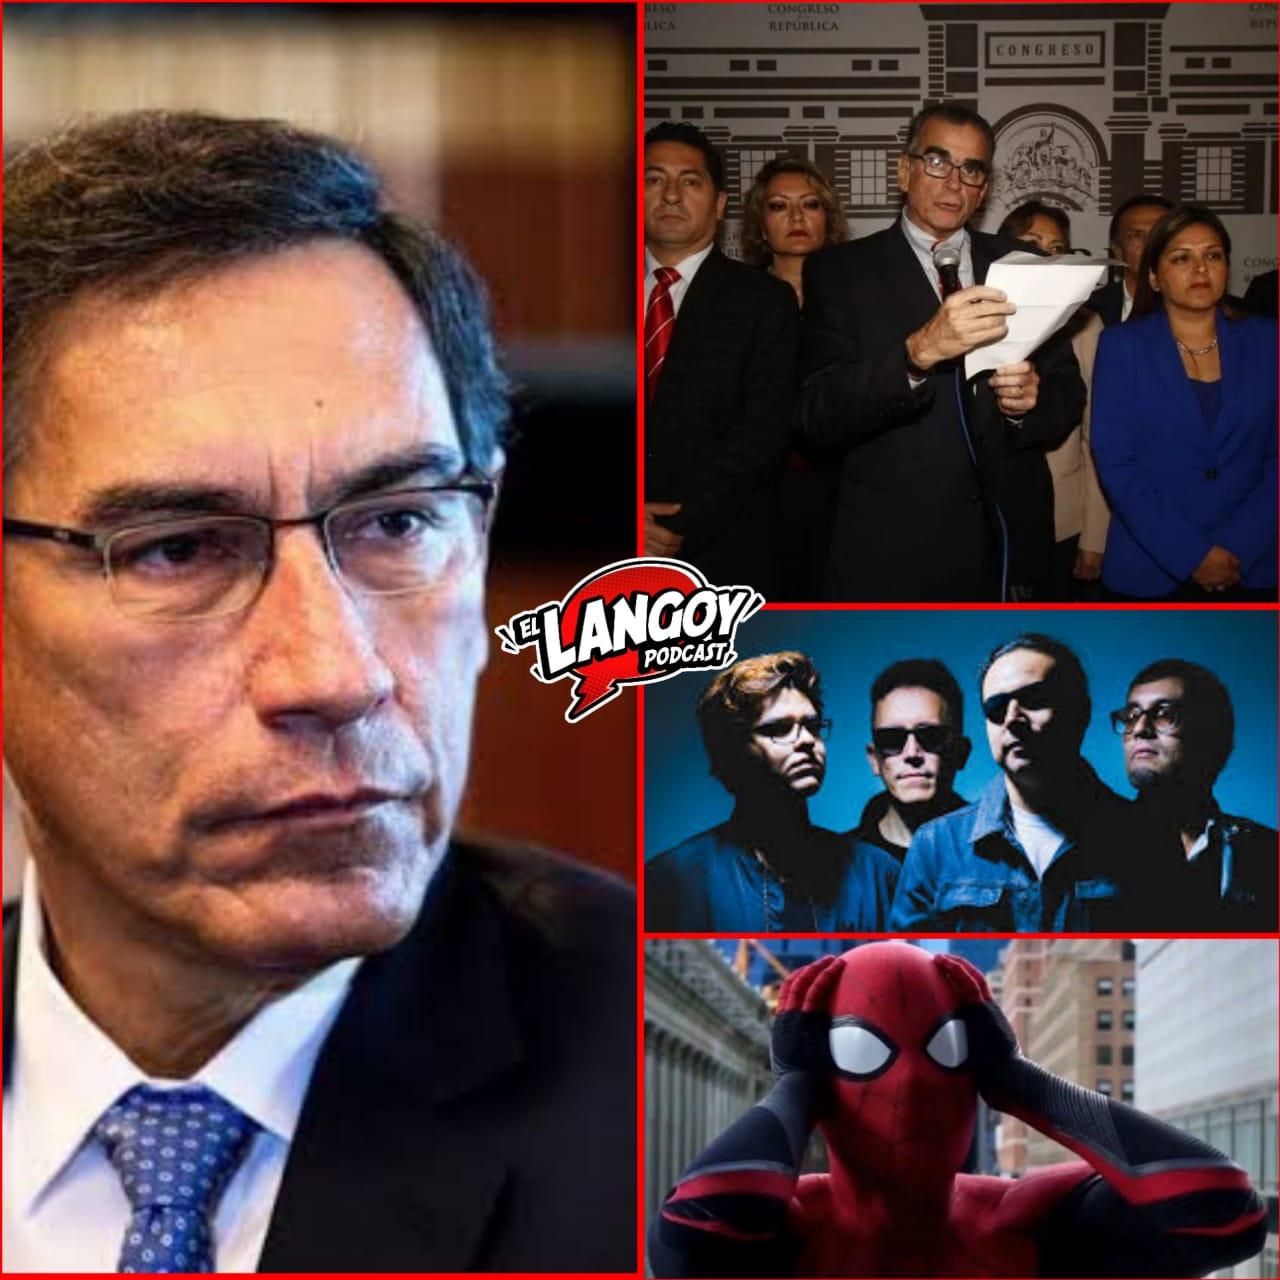 Langoy Podcast disolución del congreso spiderman vizcarra